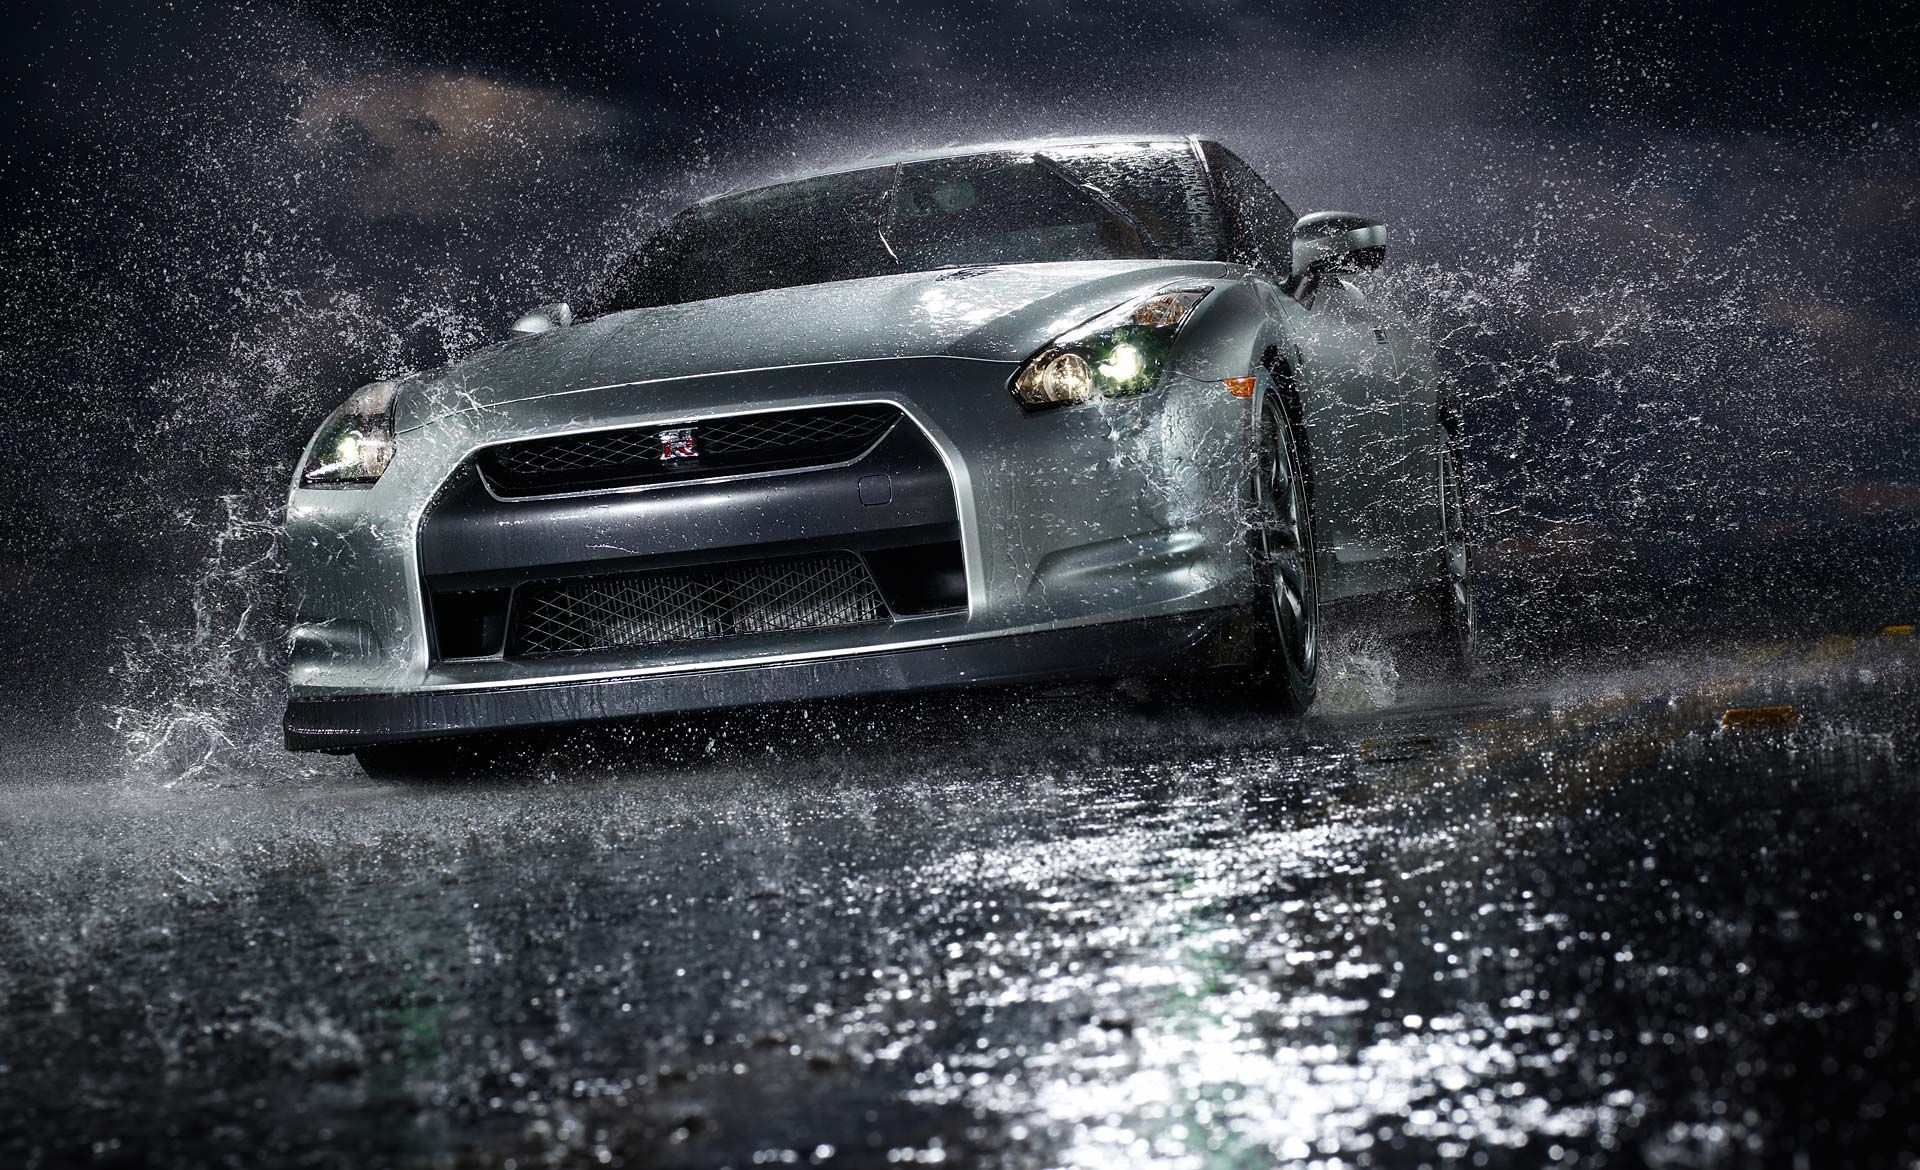 Charmant The Fastest Accelerating Car! The Nissan Skyline GTR